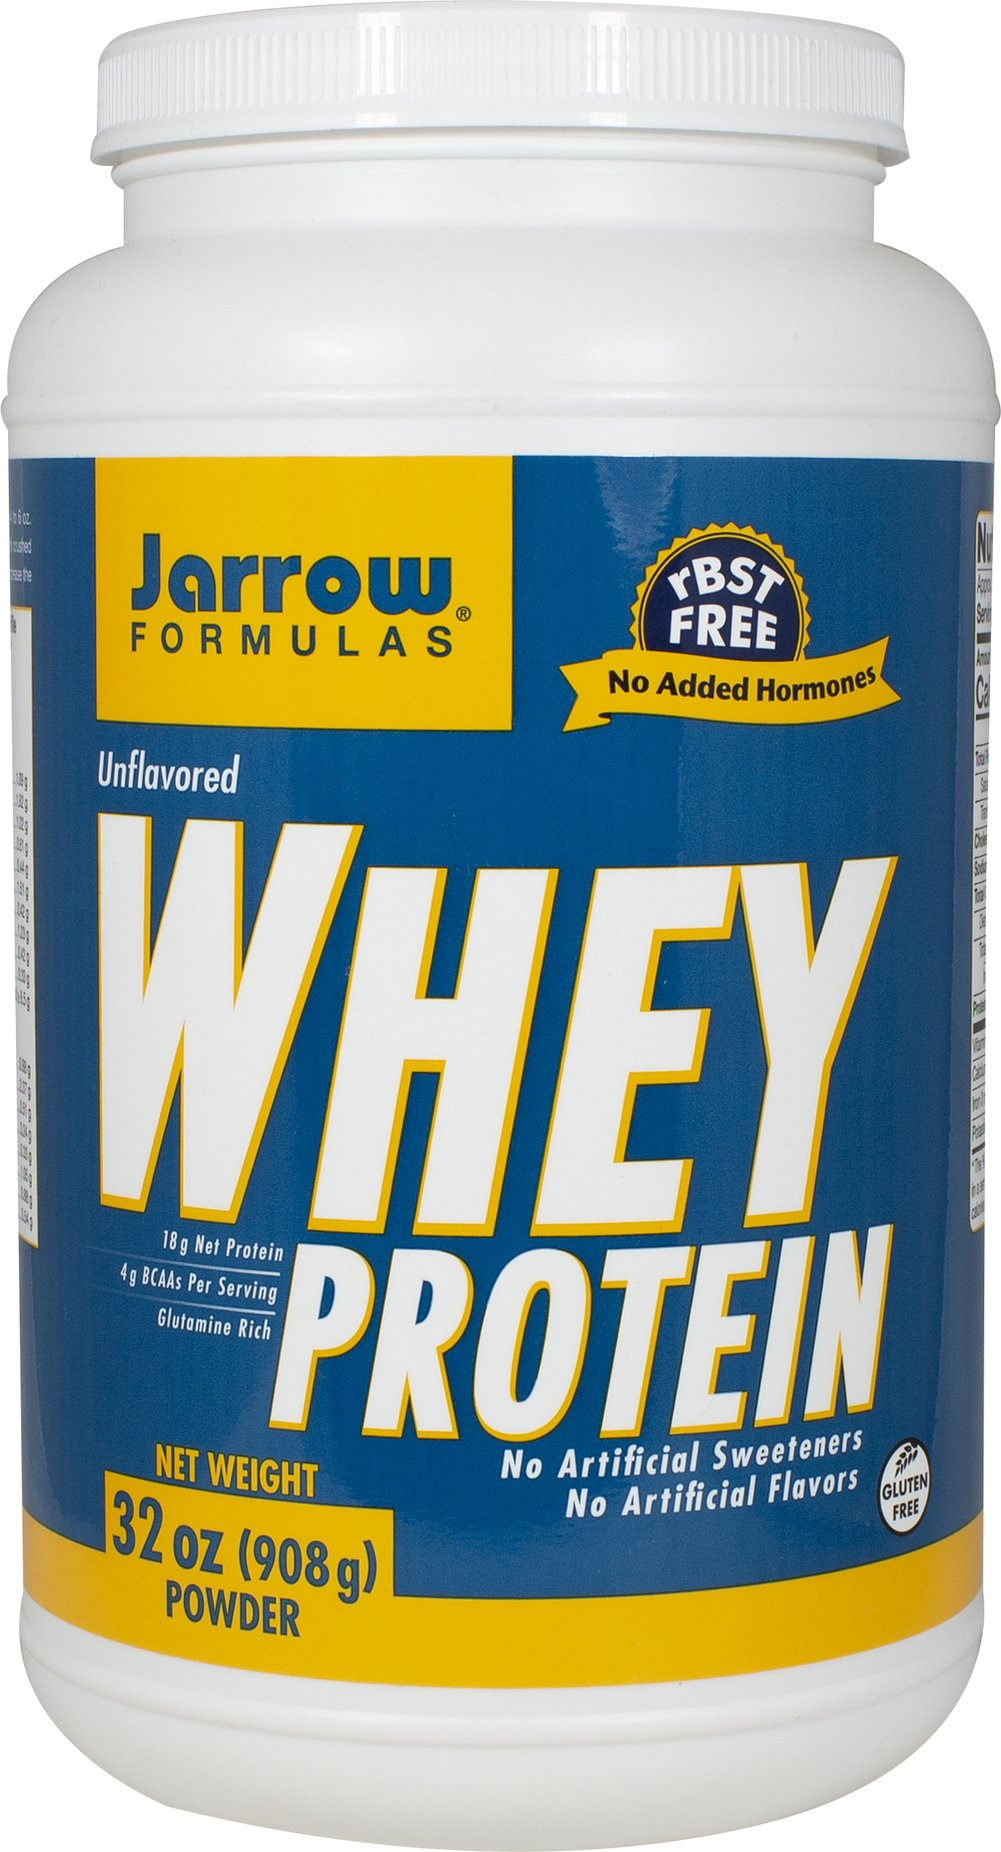 Whey Protein Jarrow Formulas Whey Protein is a 100% natural protein concentrate of whey, from cows not treated with growth hormone (rBST), and is ultrafiltered to be low in fat, lactose and carbohydrates.   2 lbs Powder  $25.99